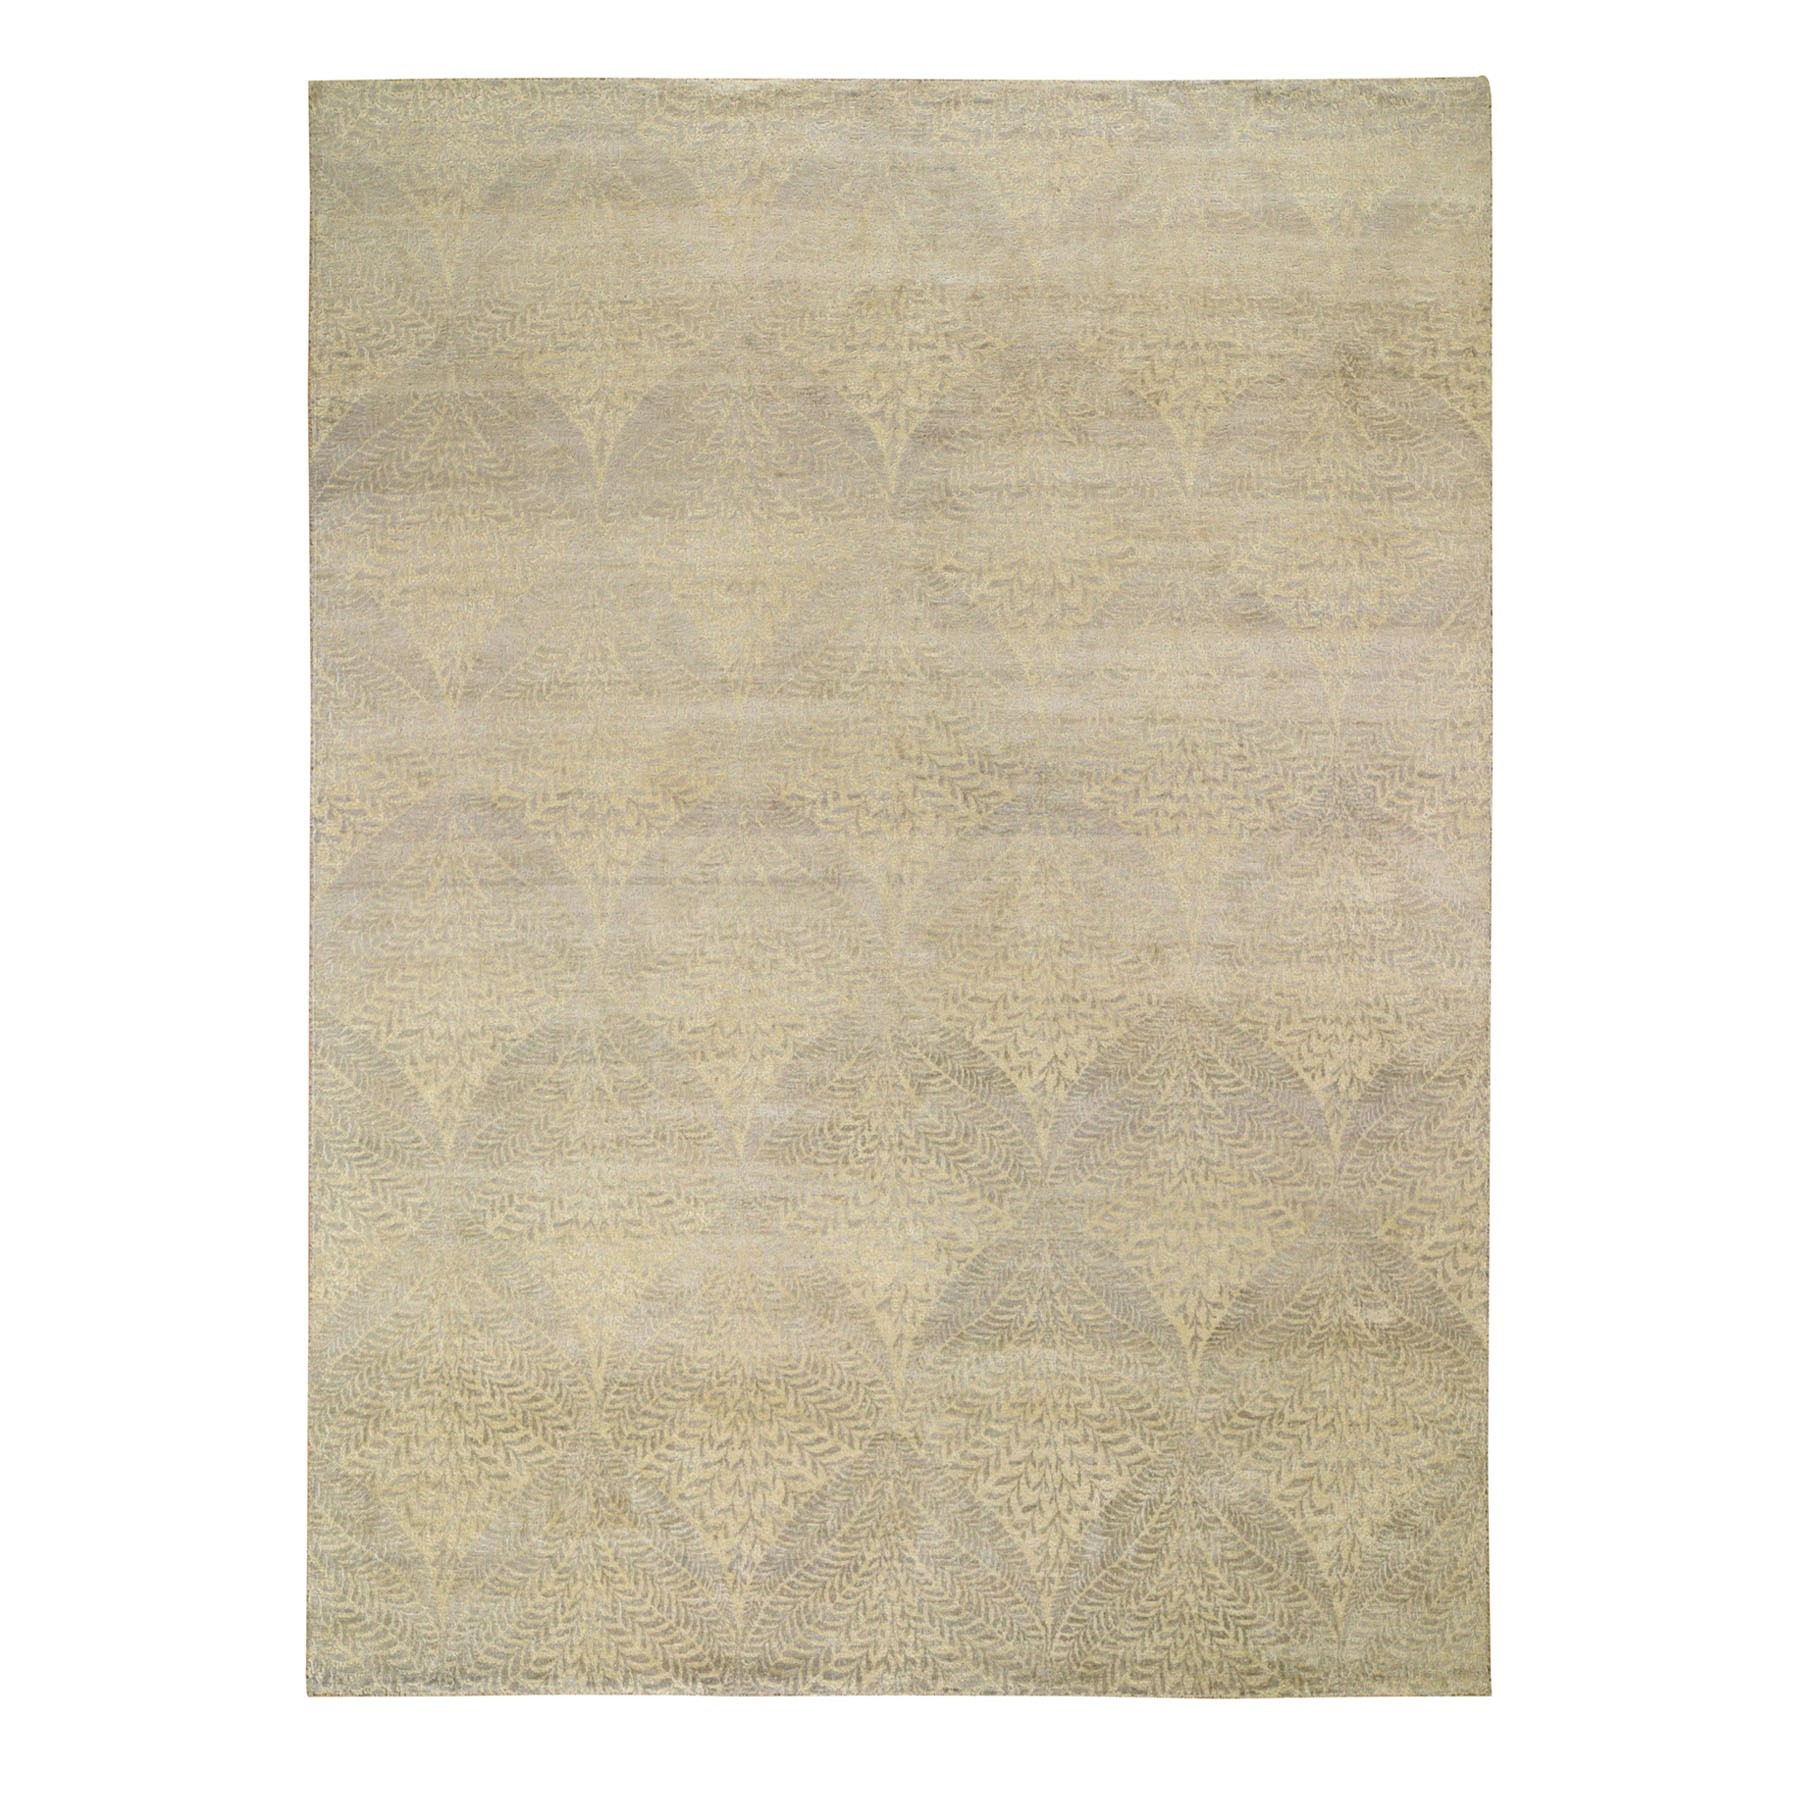 "8'10""x12'21"" Gold Leaf Design Tone On Tone Pure Silk Hand Woven Oriental Rug"